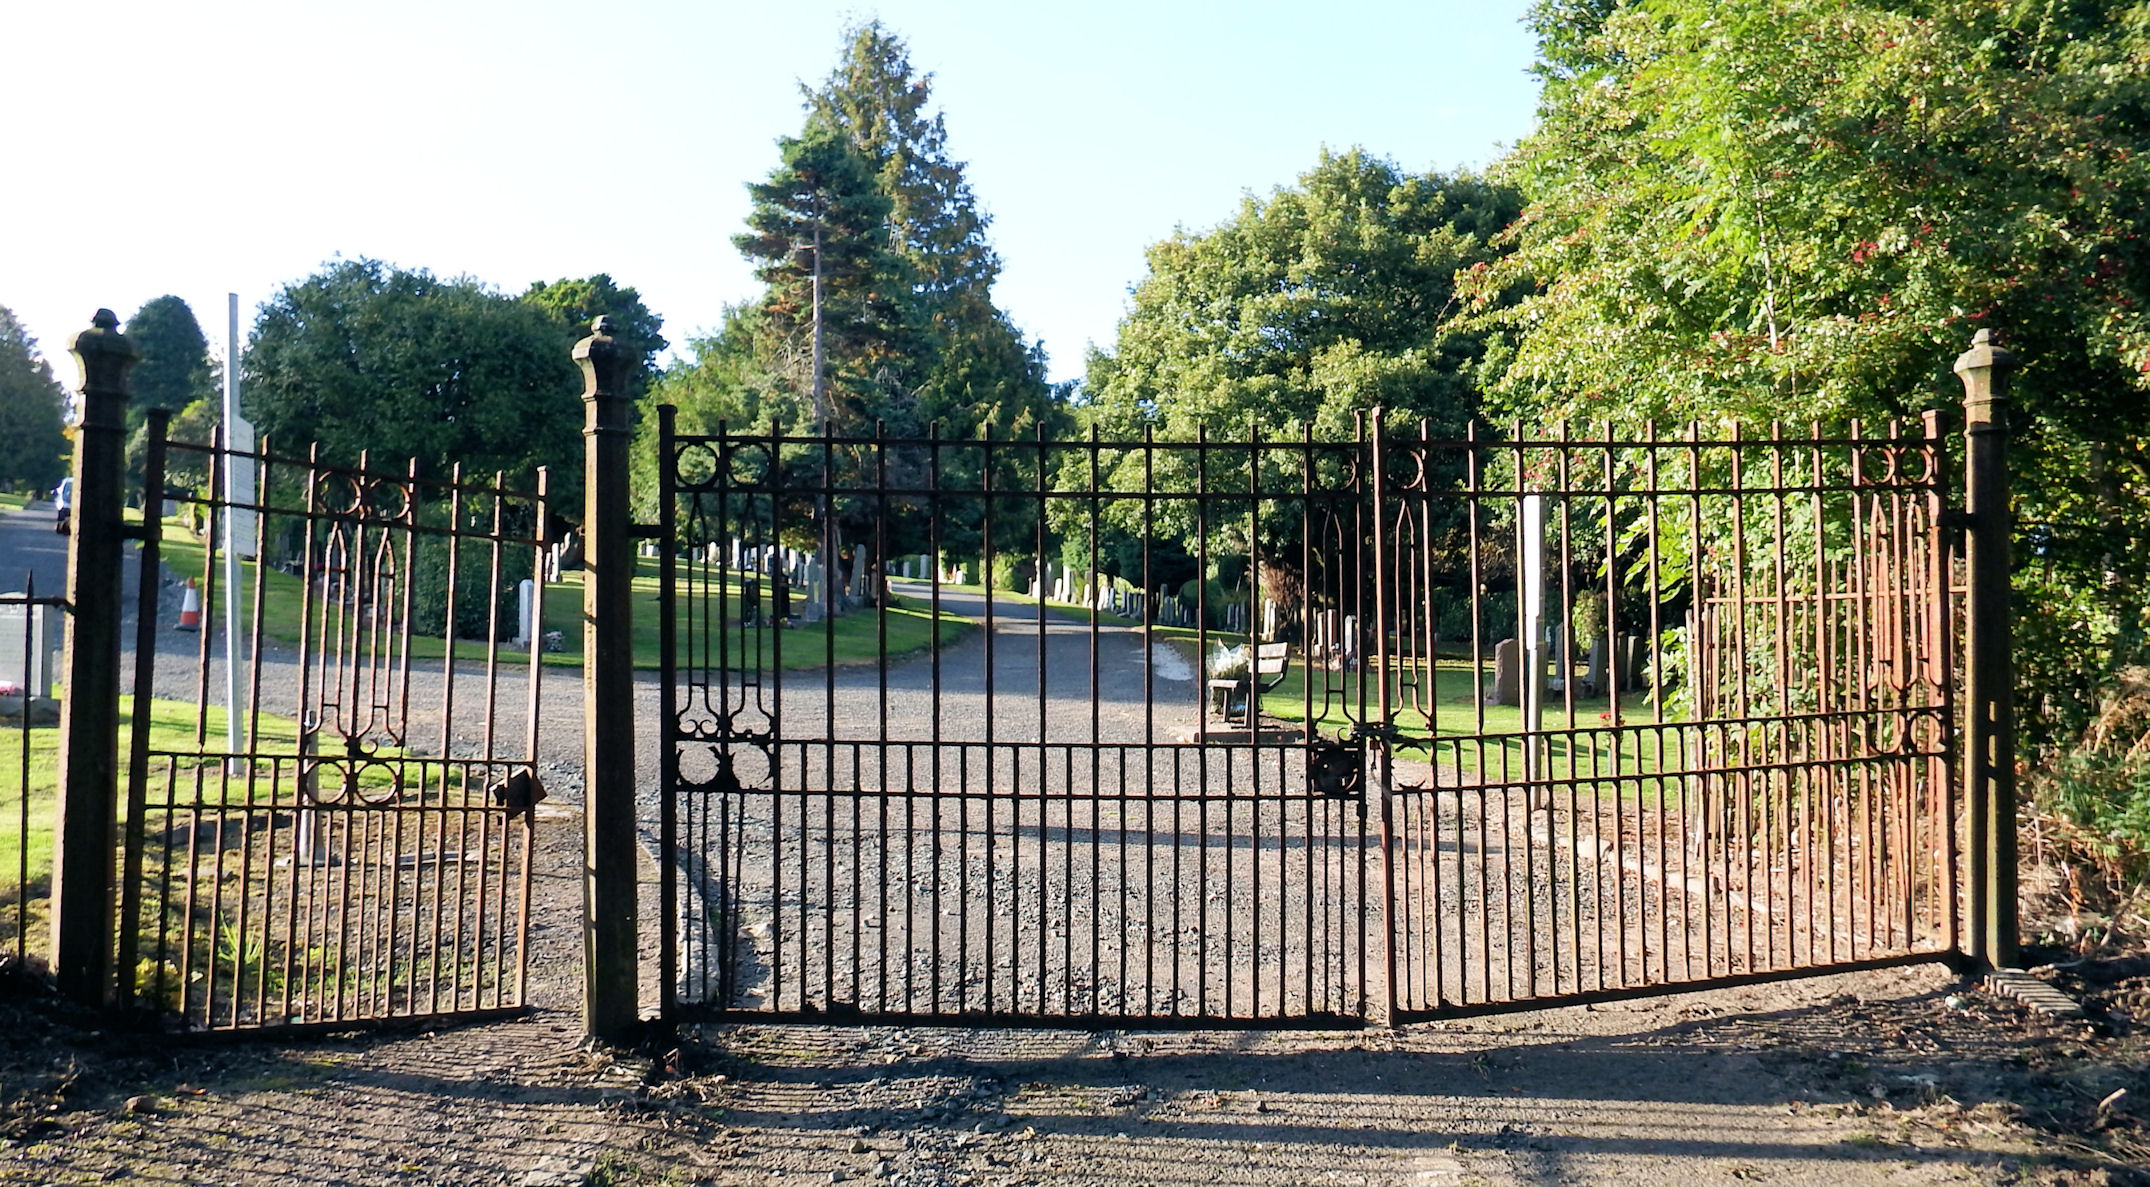 Vale of Leven Cemetery in Alexandria, West Dunbartonshire